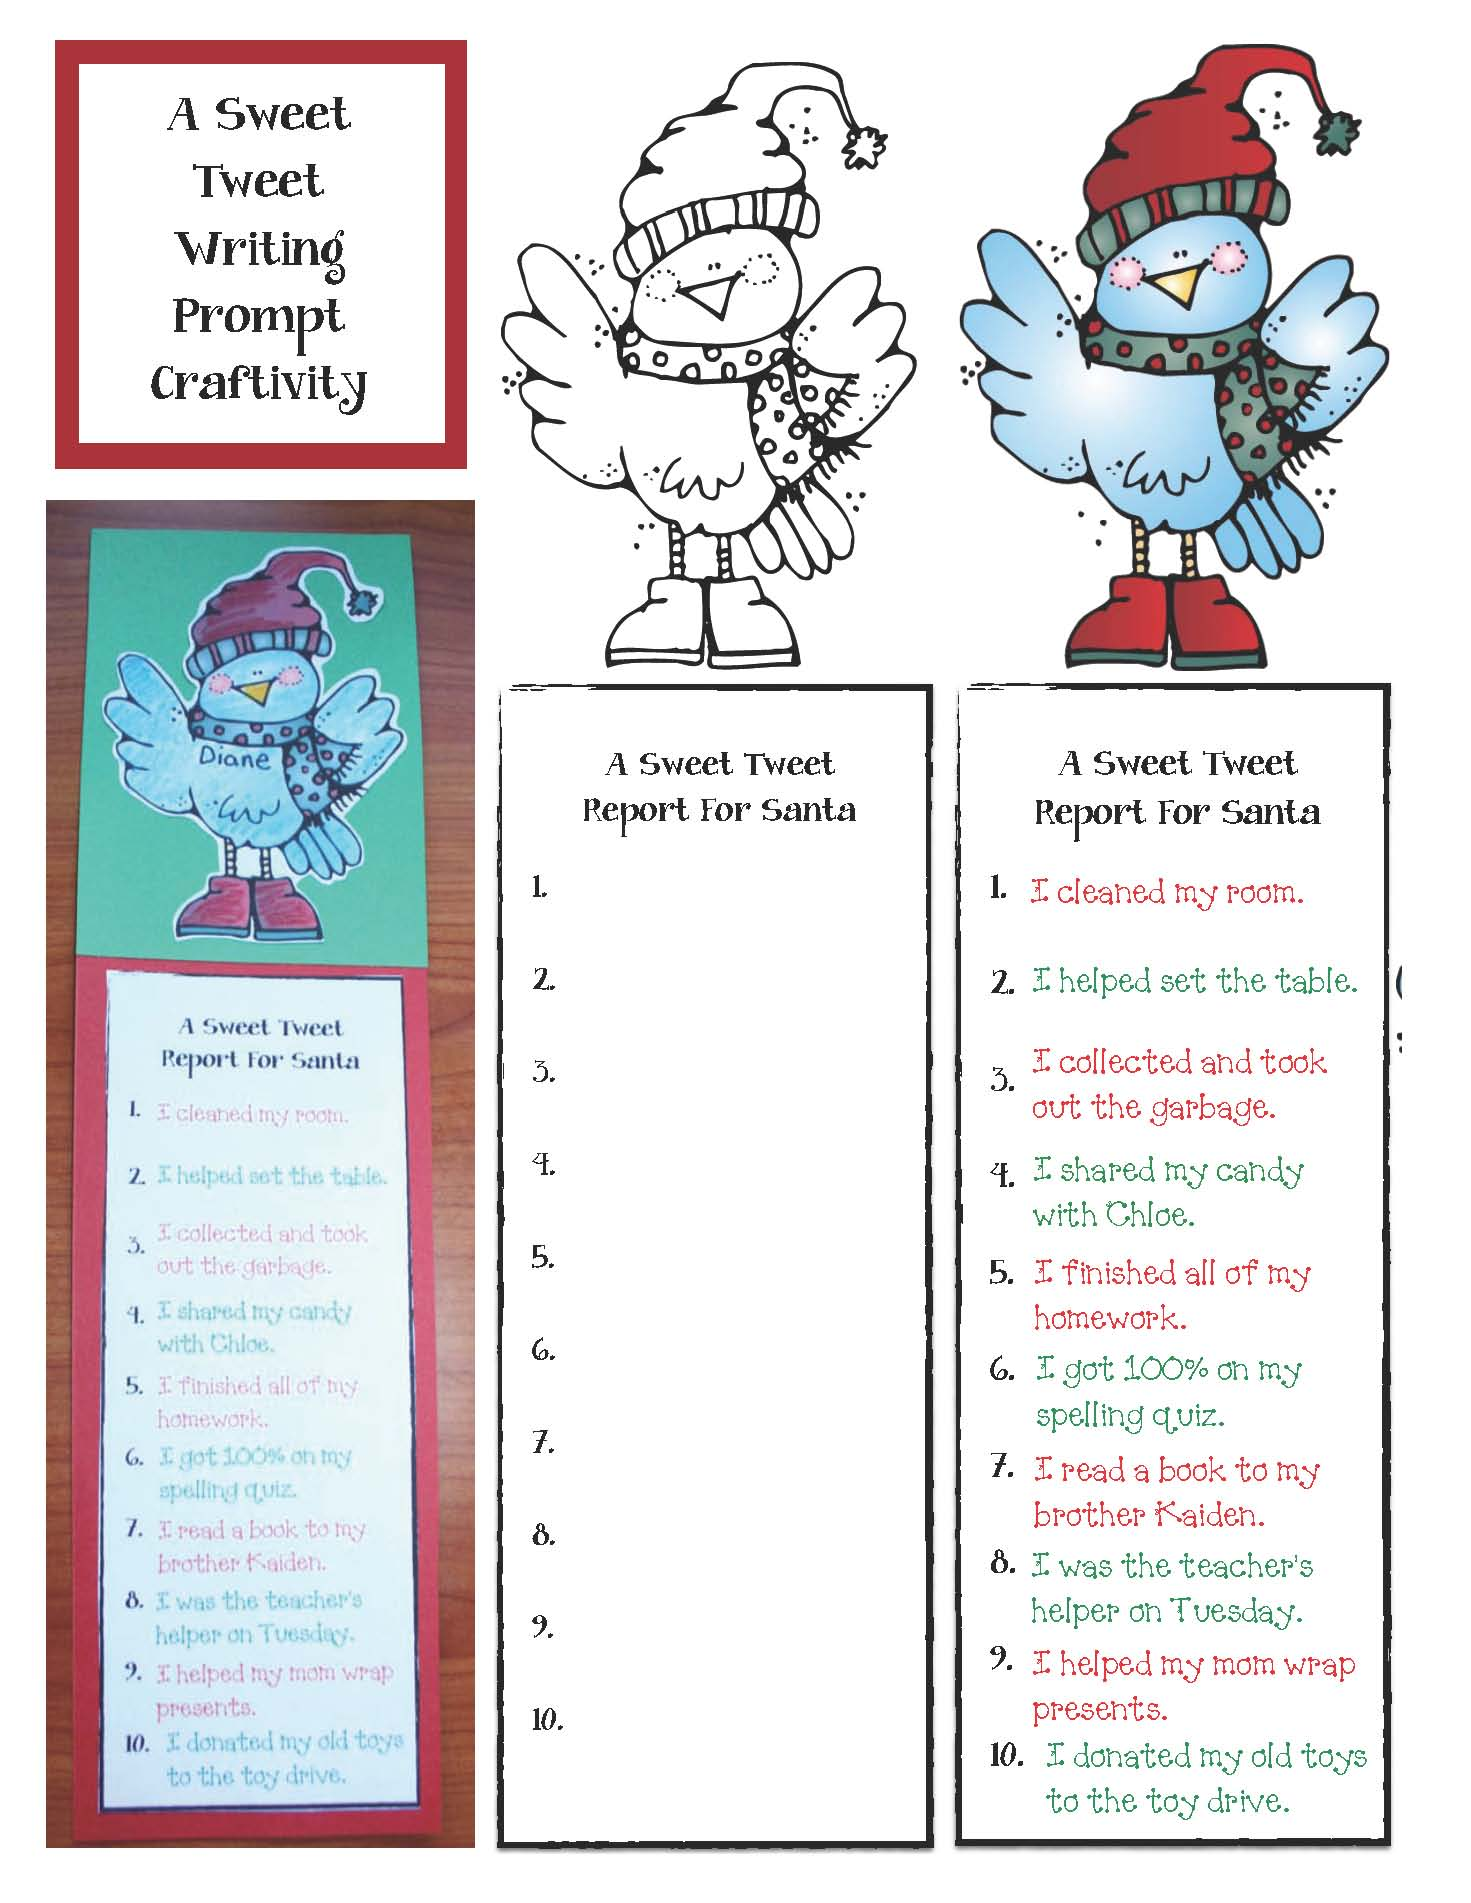 December writing prompts, santa activities, reindeer activities, elf activities, elf writing prompts, reindeer wriitng prompts, class made books, tweeting activities, Christmas stocking activities, fill a bucket activities for december